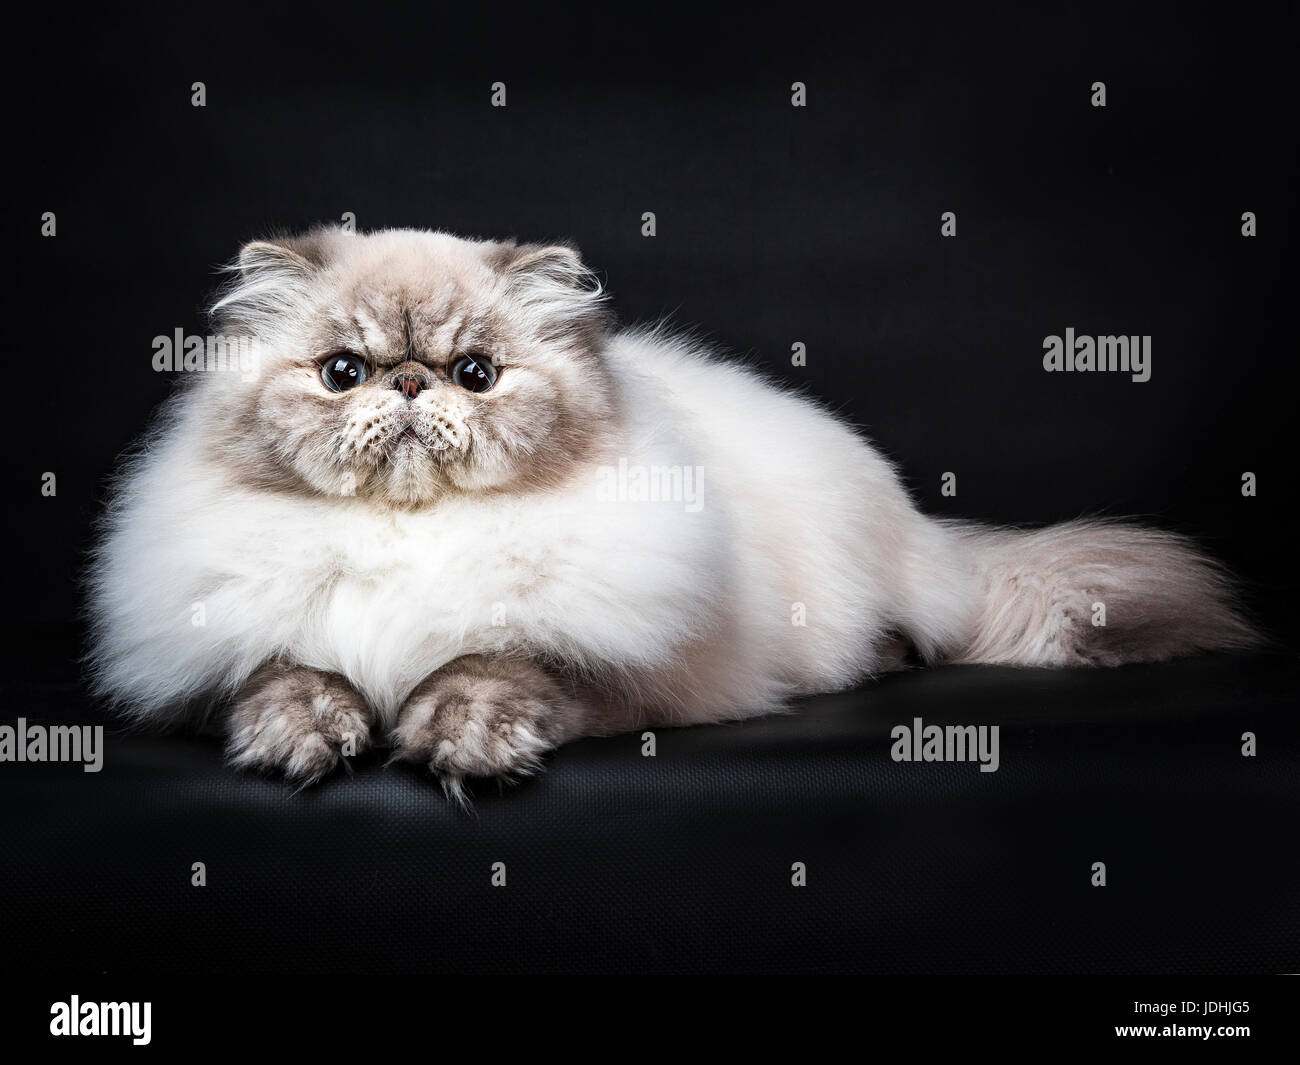 Tabby point Persian cat laying isolated on black background - Stock Image